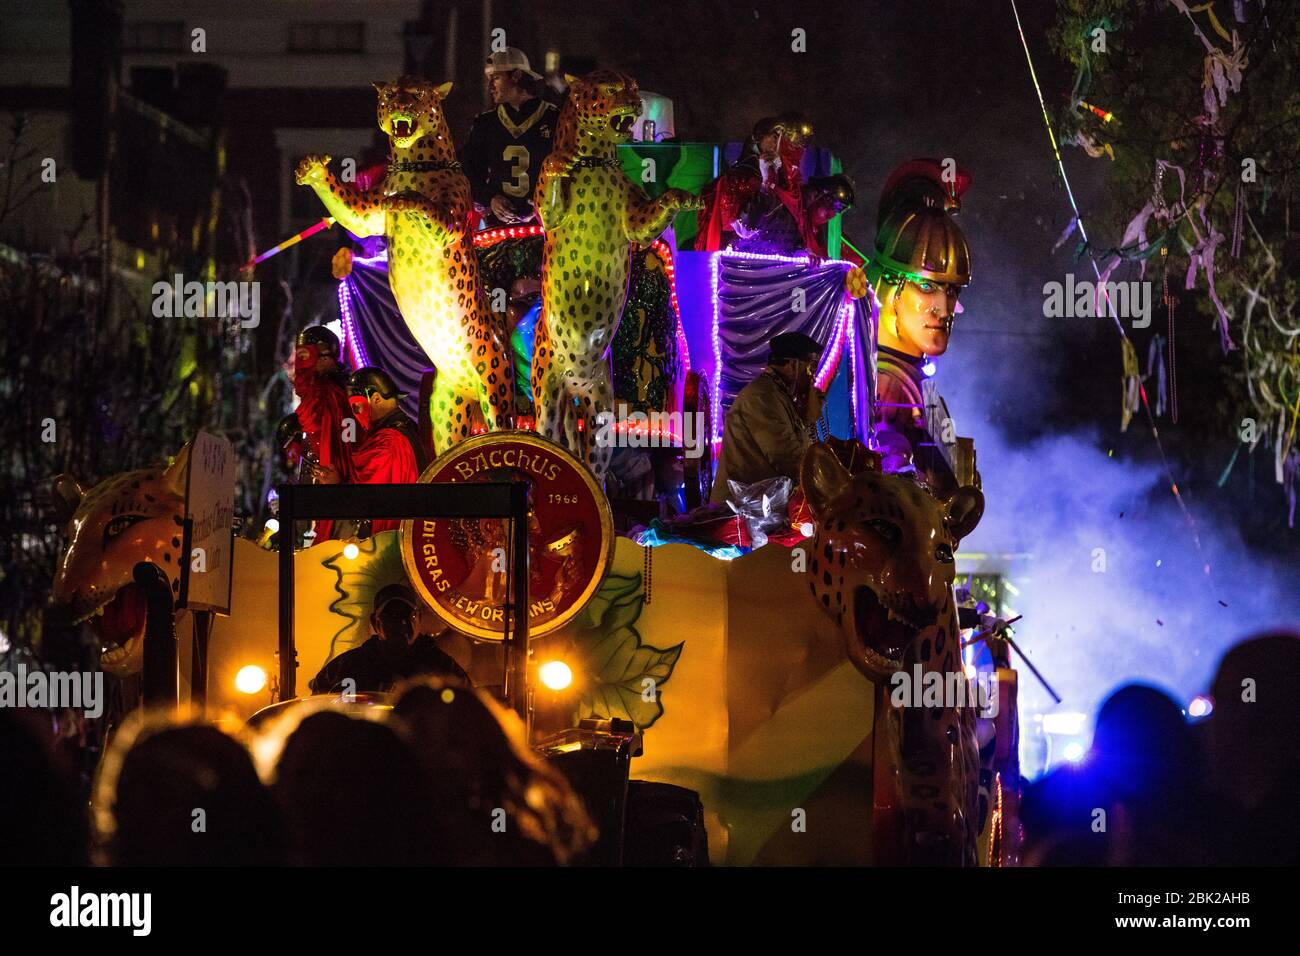 A float from Krewe Bacchus tossing beads to spectators during Mardis Gras in New Orleans, Louisiana Stock Photo